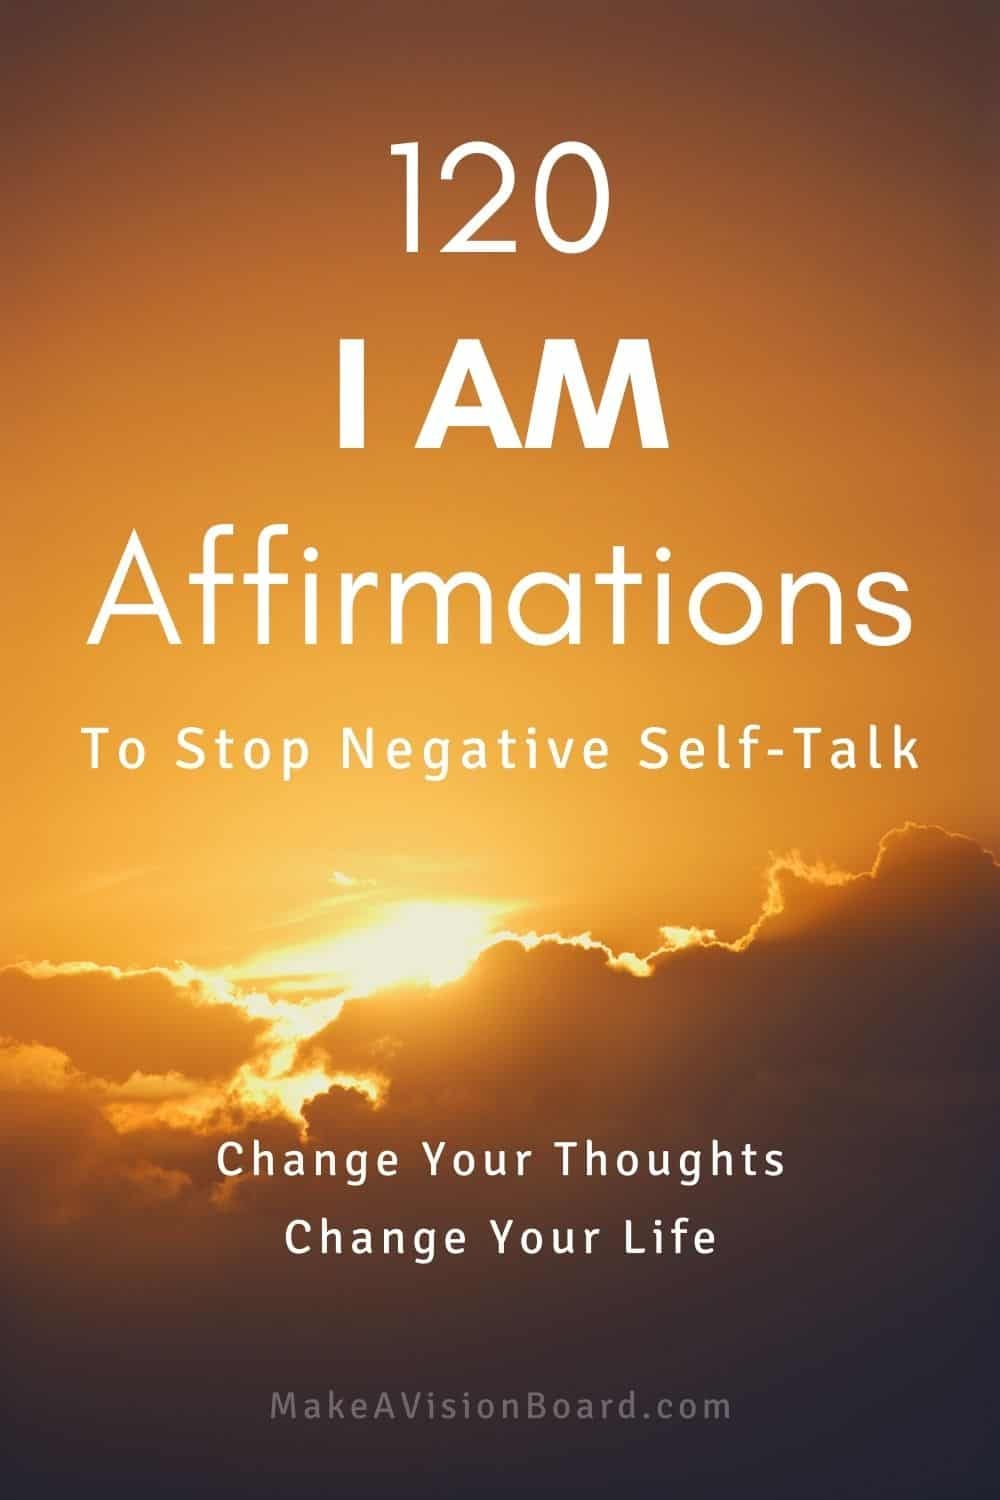 I Am Affirmations to Stop Negative Self-Talk